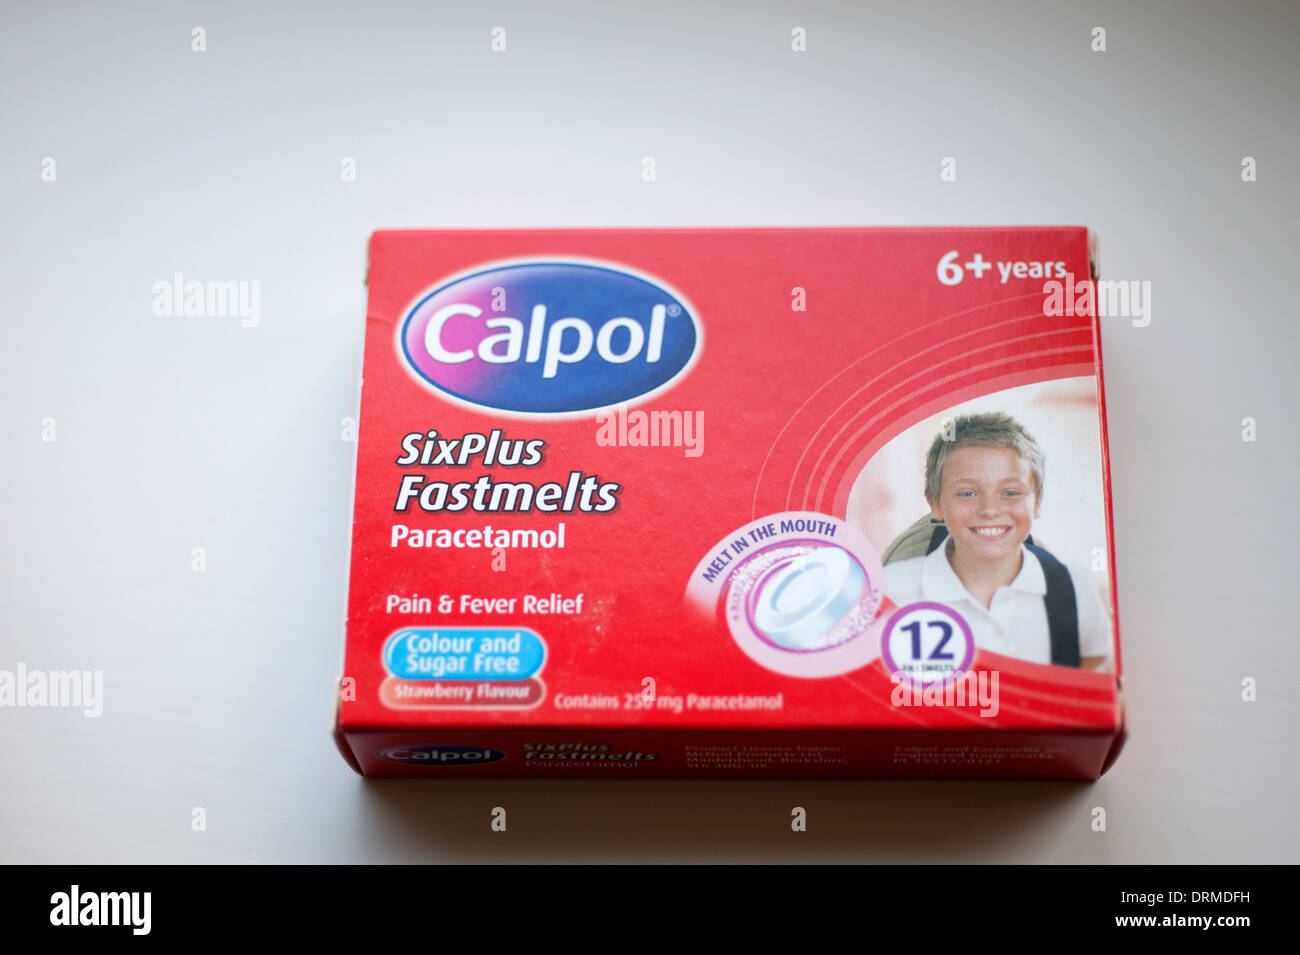 Calpol Fastmets paracétamol enfants pain killer Photo Stock